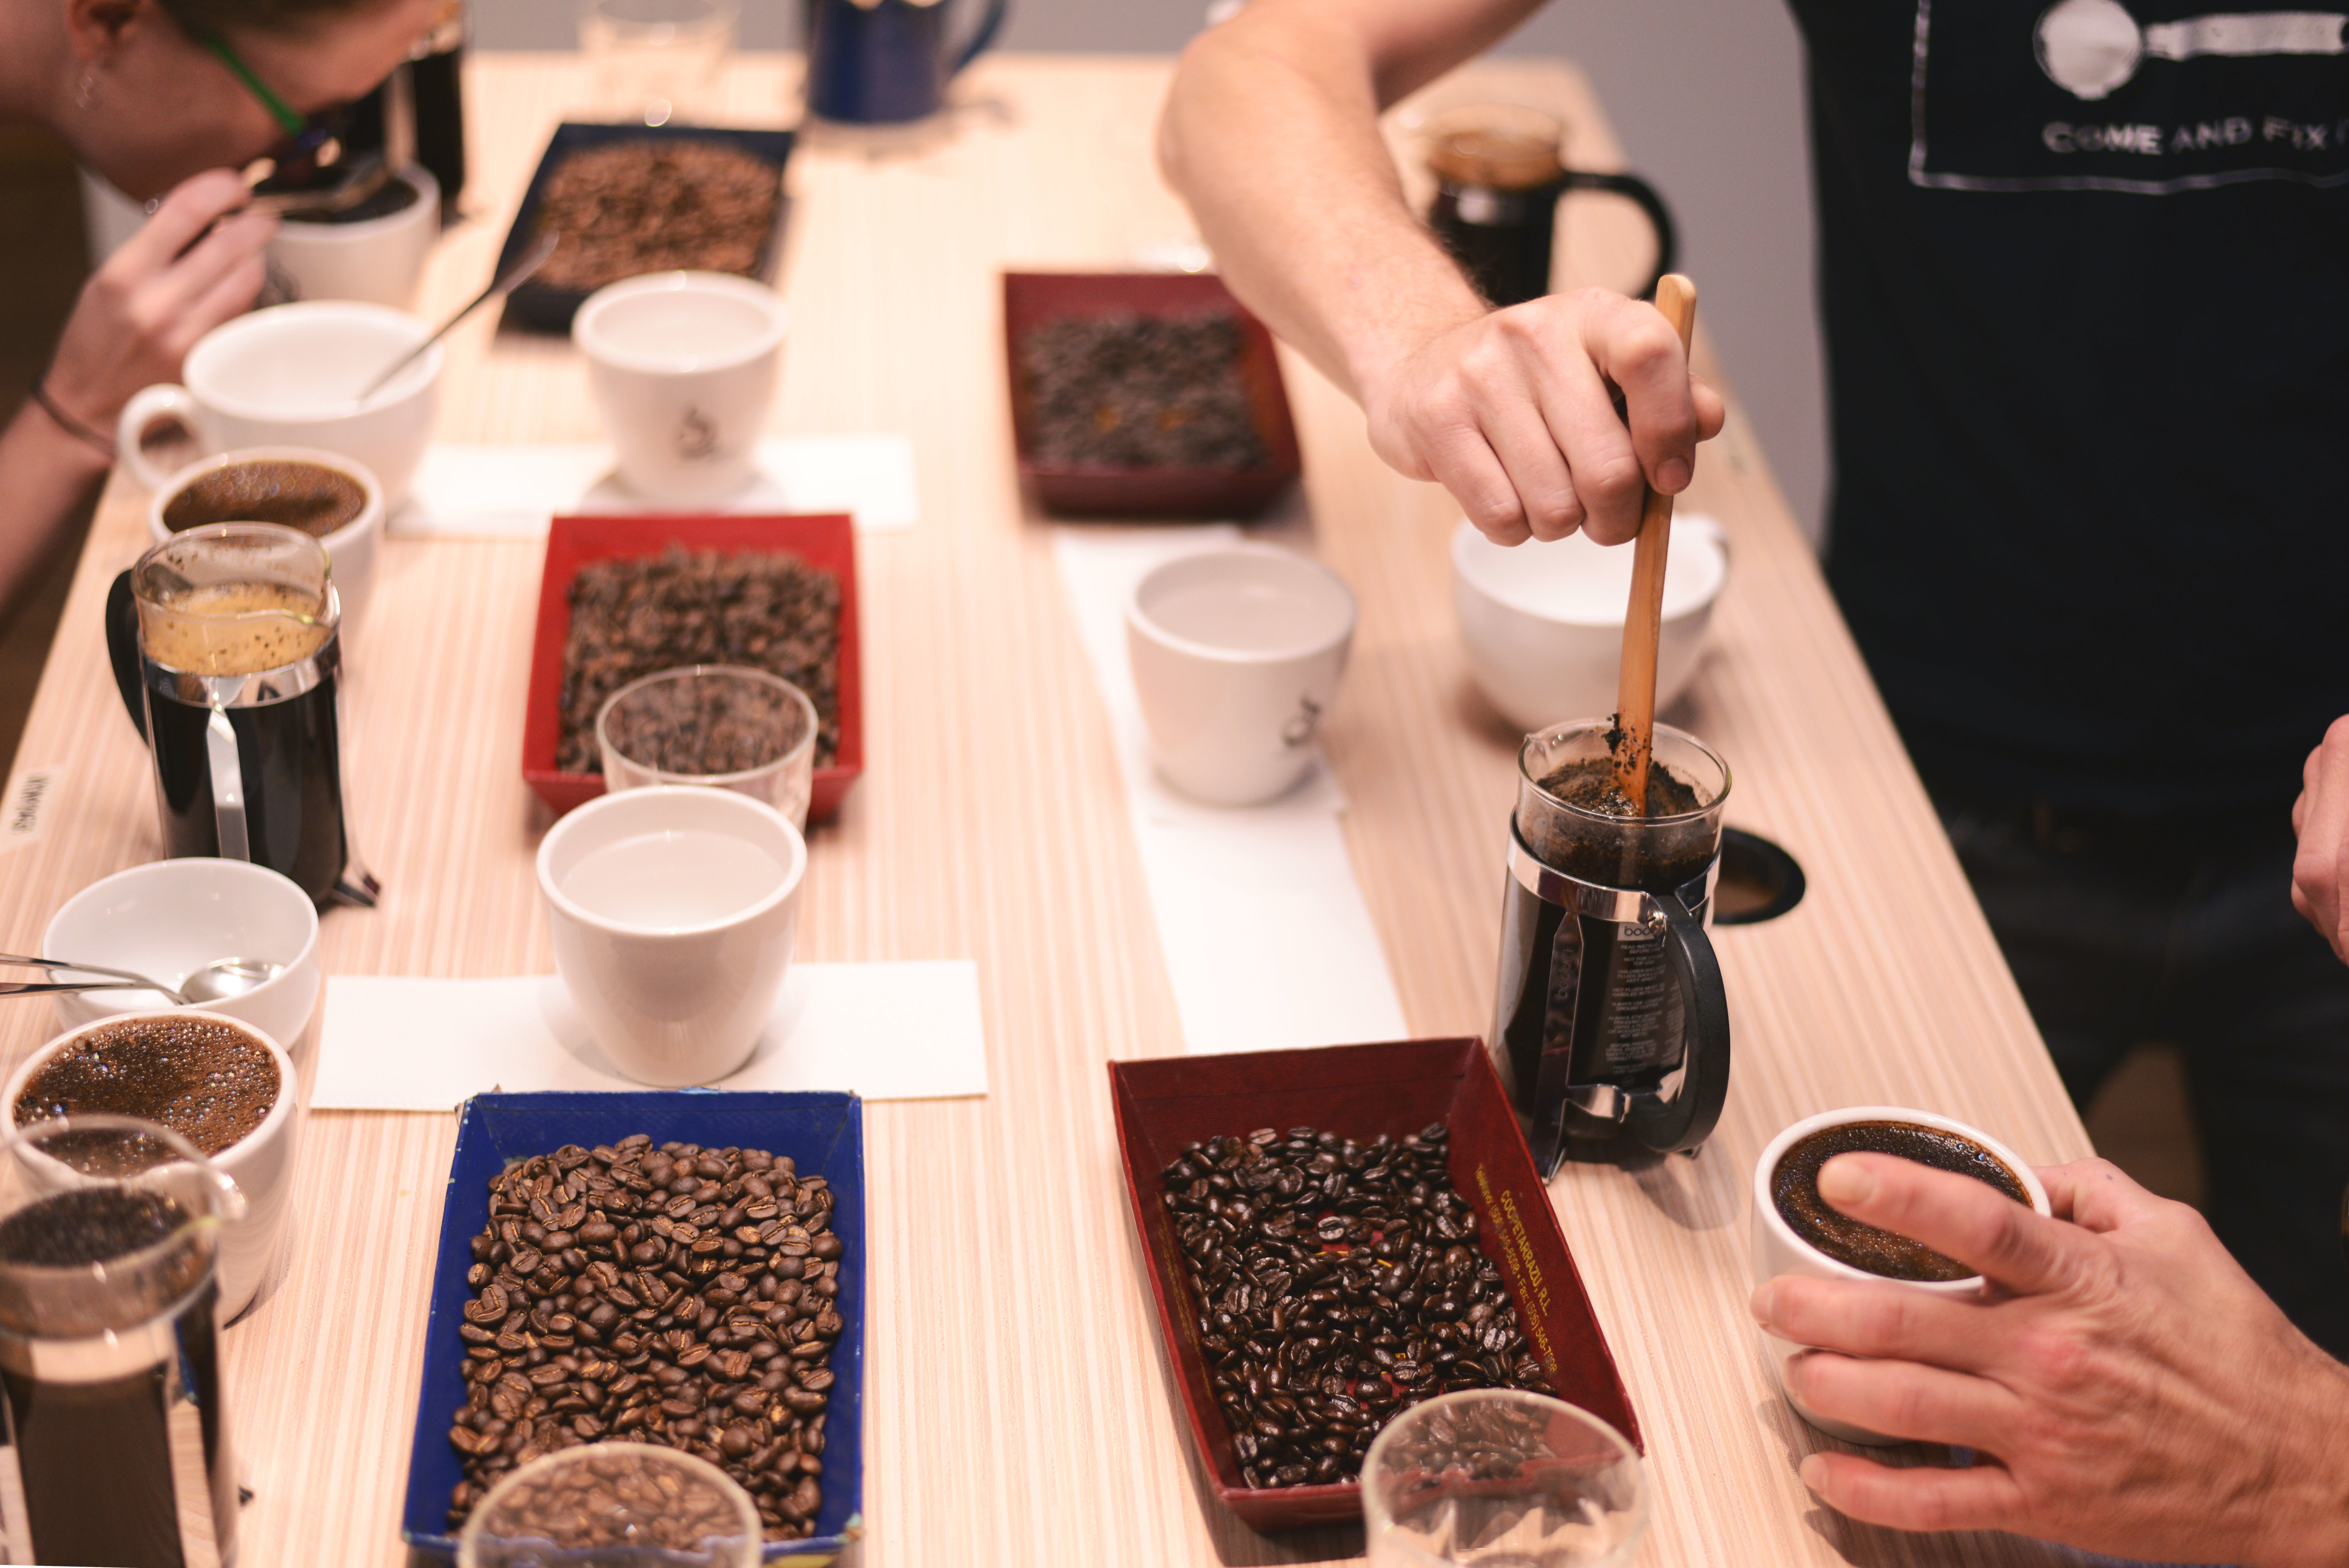 Texas Coffee Traders is an artisanal local coffee specialist offering 'farm to table' coffee